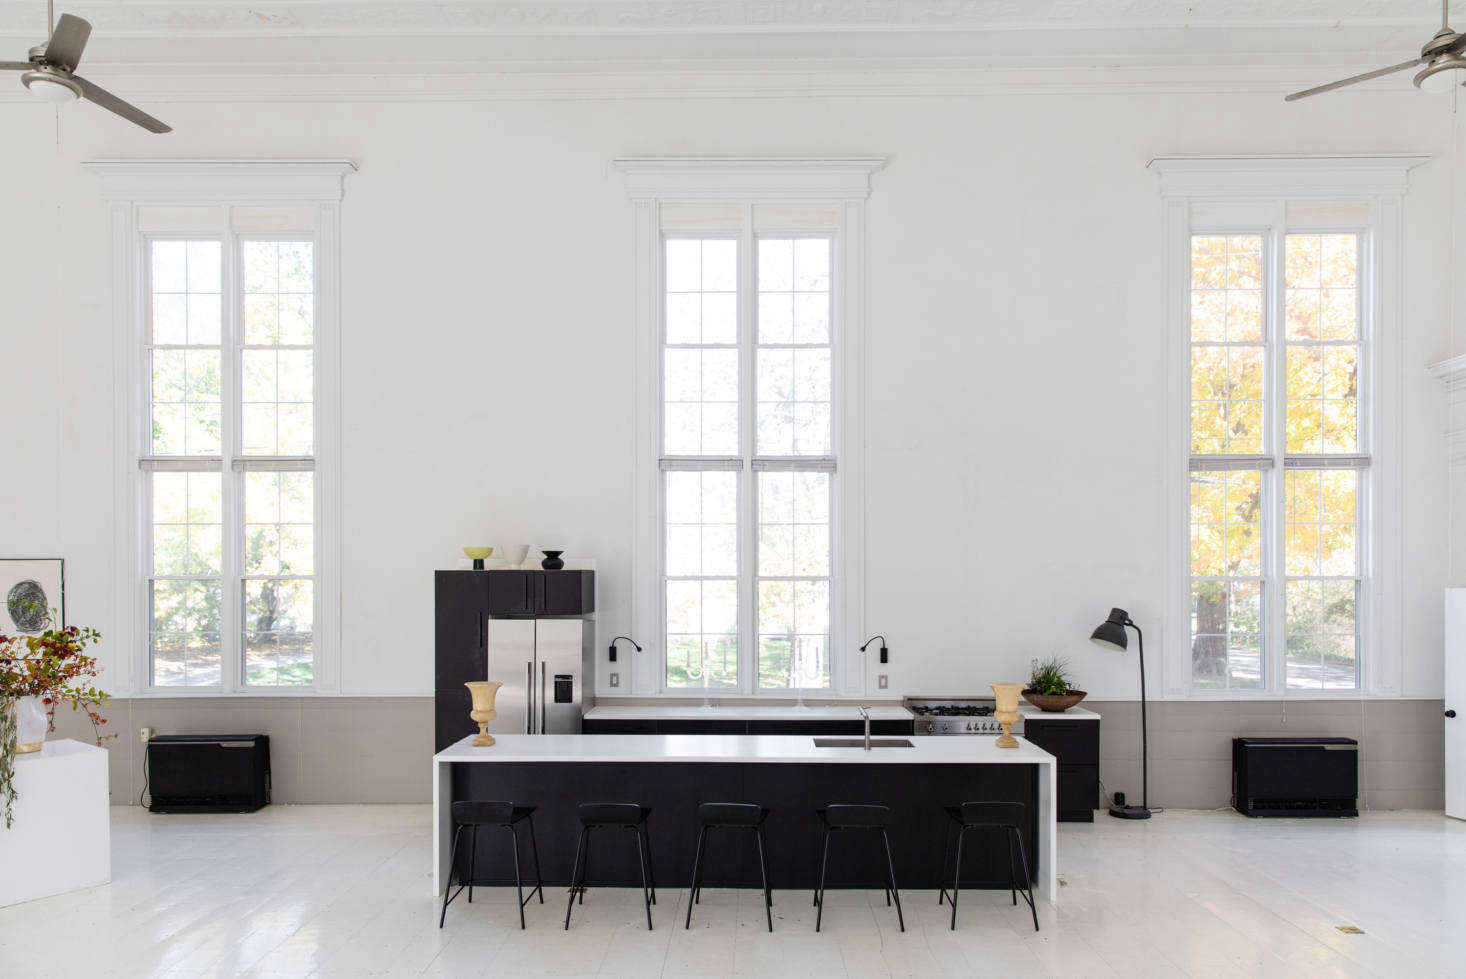 """McNeil installed a kitchen in the center of the main space, framed by the windows. Though it looks like a high-end kitchen system, it's actually black Ikea cabinetry with countertops from Lowe's. """"I wanted it to convert easily to a ' bar' for the public events,"""" McNeil says."""